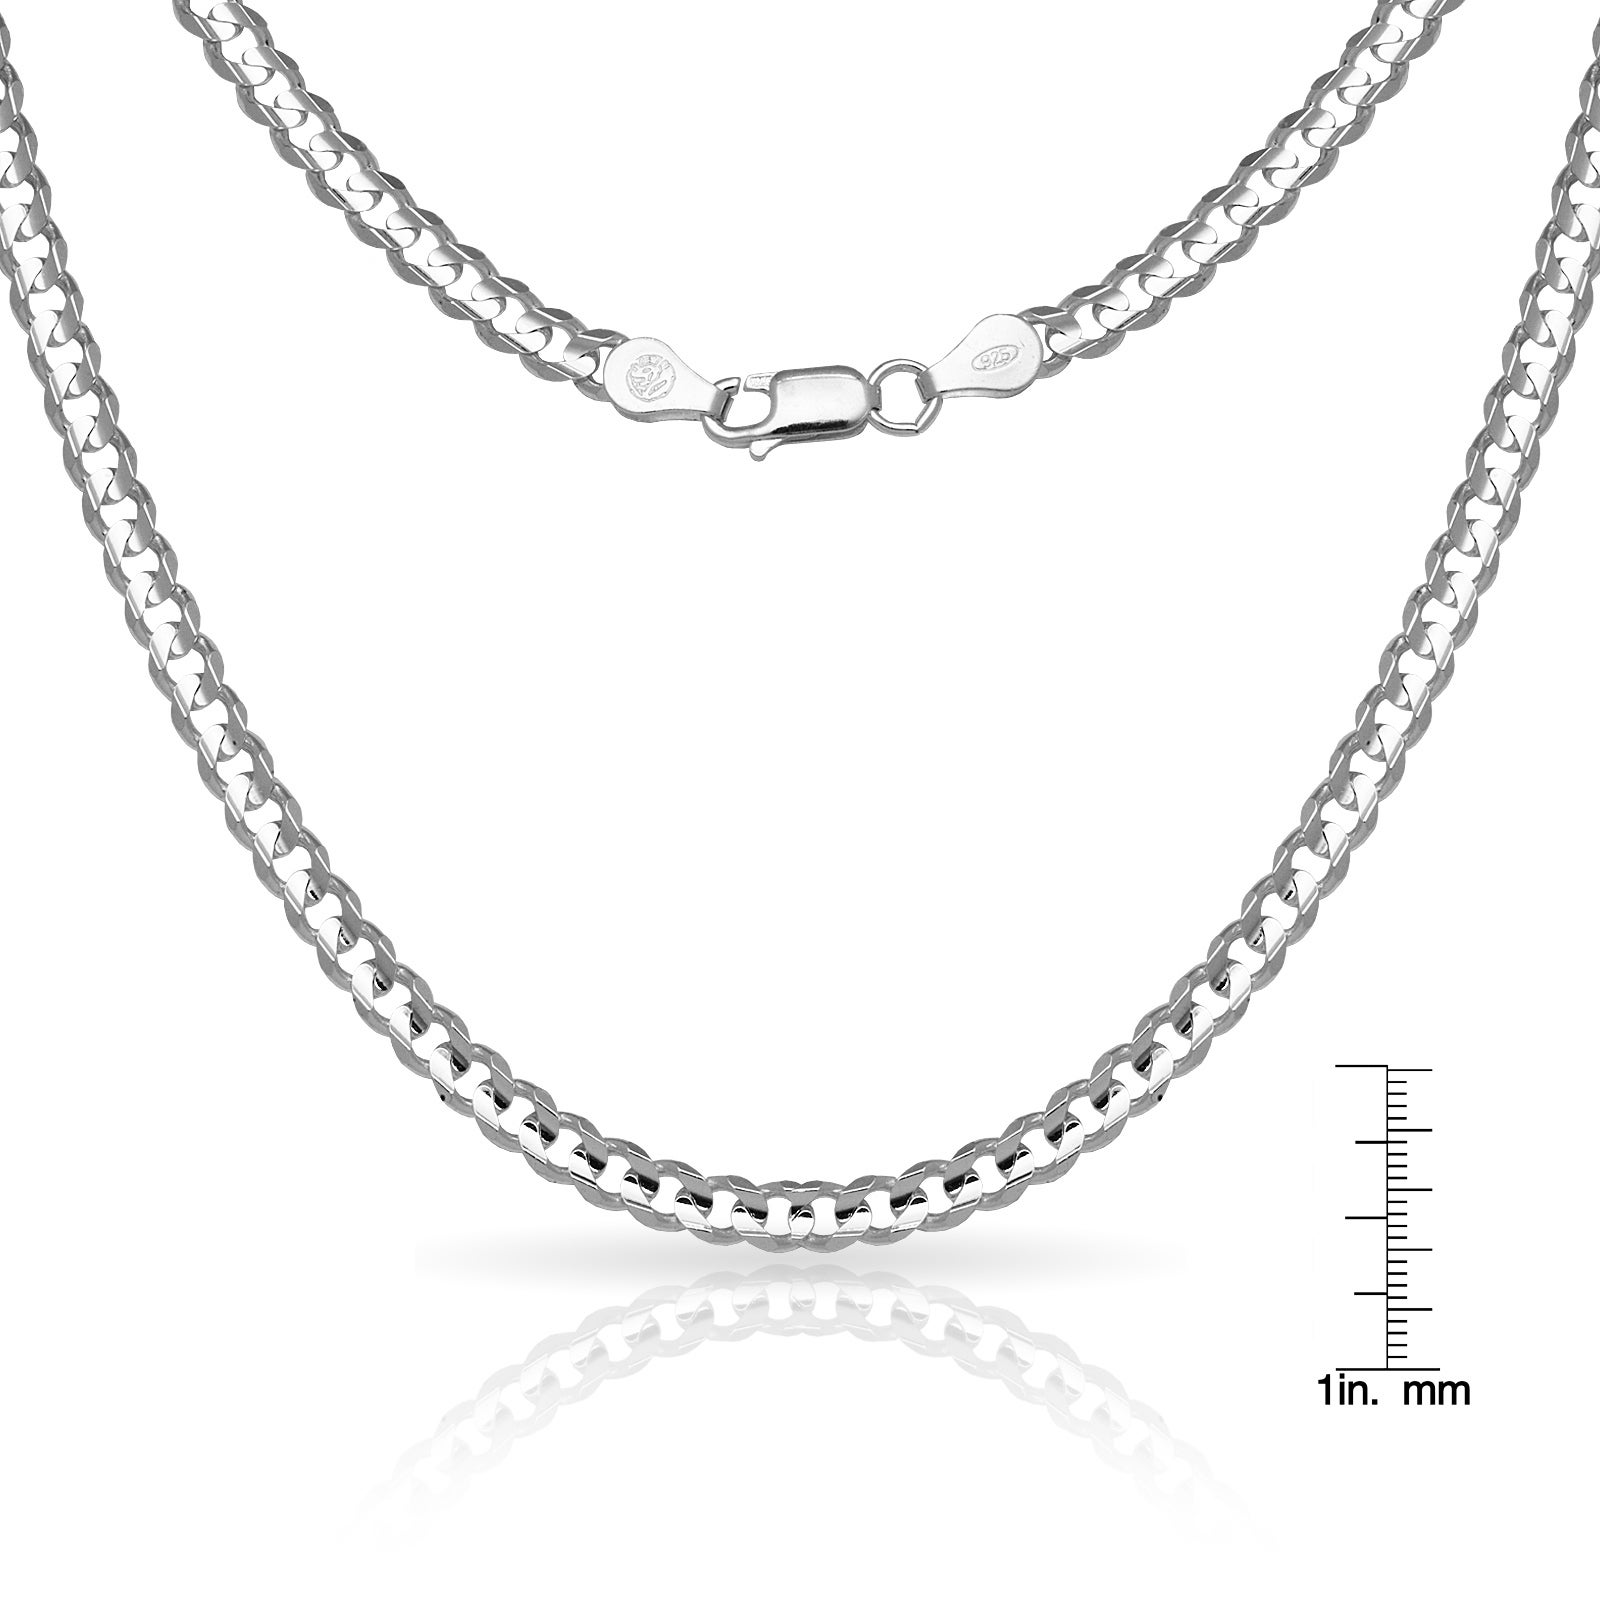 Available 18, 20, 24 Stainless Steel 2mm Snake Curb Chain Necklaces